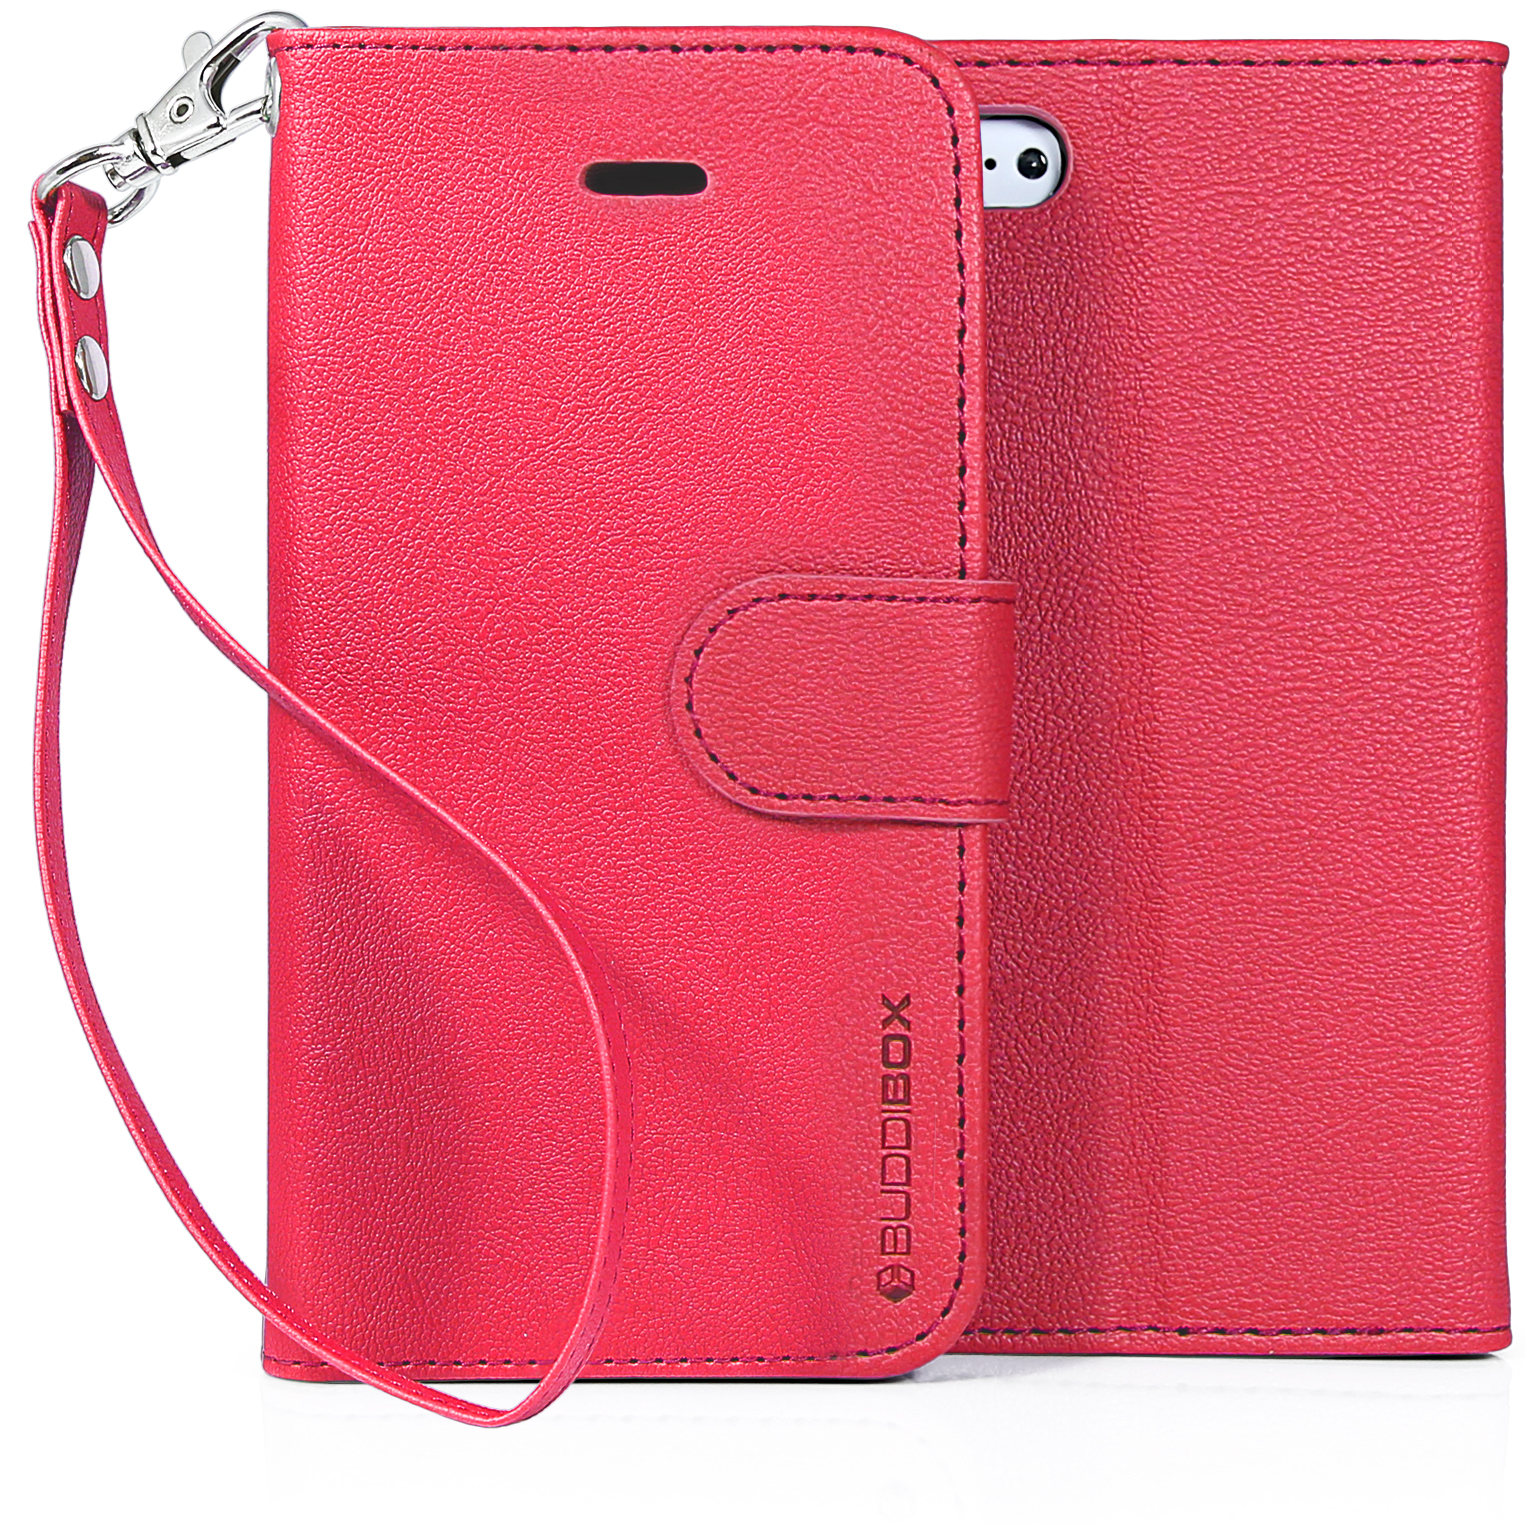 BUDDIBOX iPhone 5C Case Premium PU Durable Leather Wallet Folio Protective Cover Case for Apple iPhone 5C